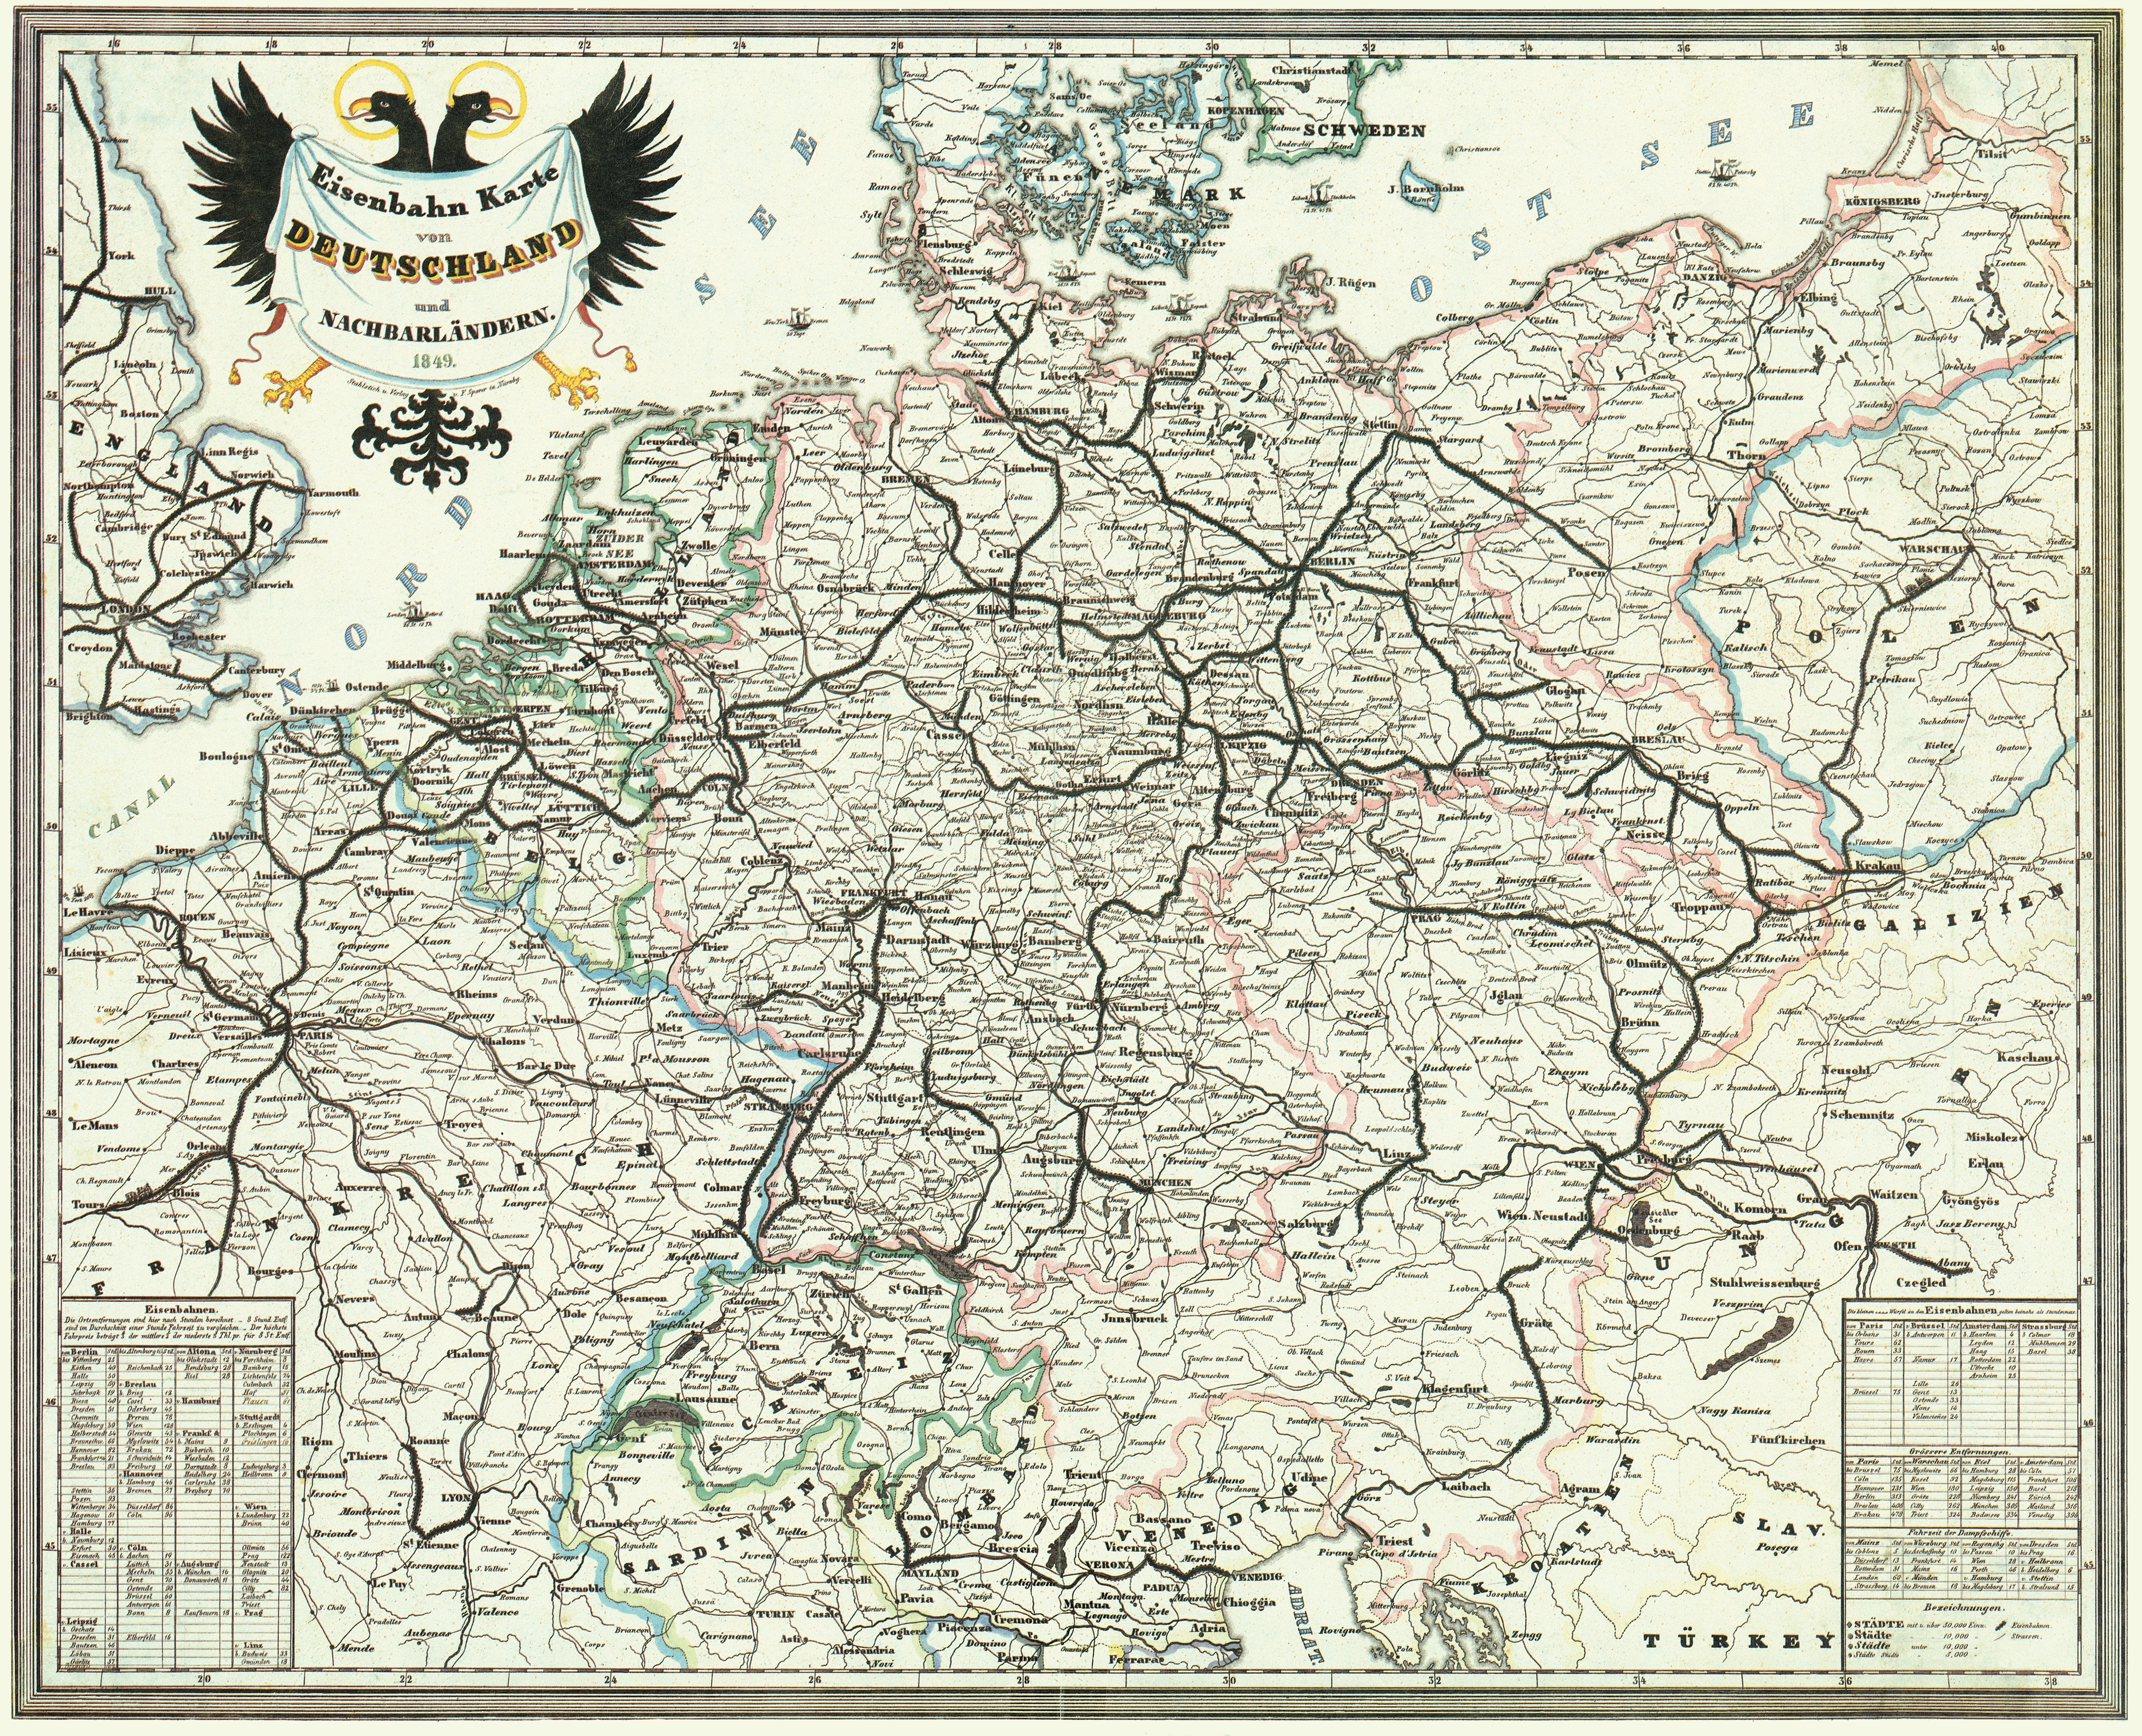 Map Of Germany With Neighbouring Countries.The Railroad System Of Germany And Neighbouring Countries From 1849